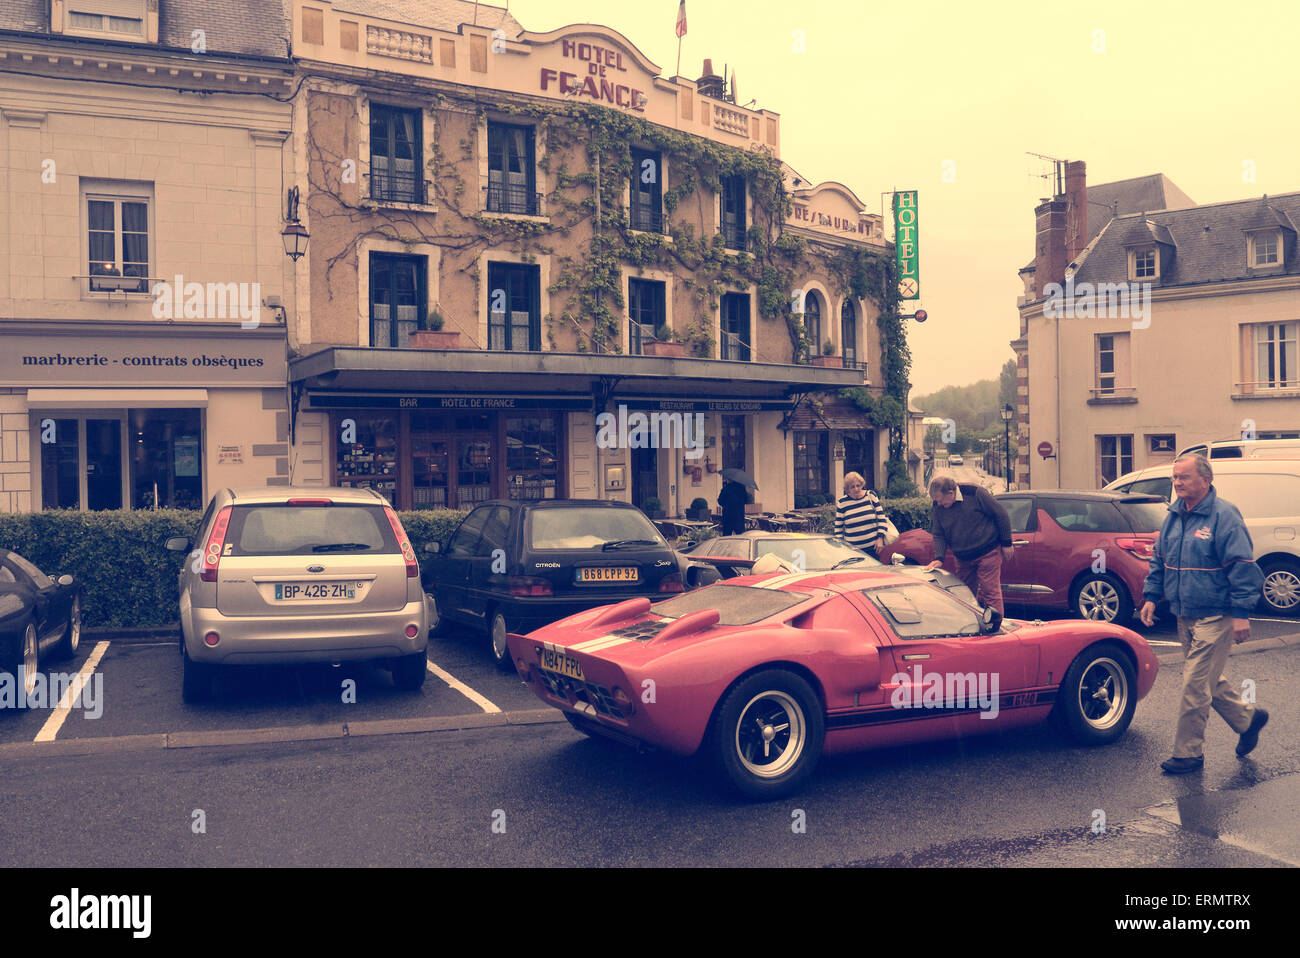 Ford gt 40 parked outside the hotel de france la chartre sur le loir stock p - La chatre sur le loir ...